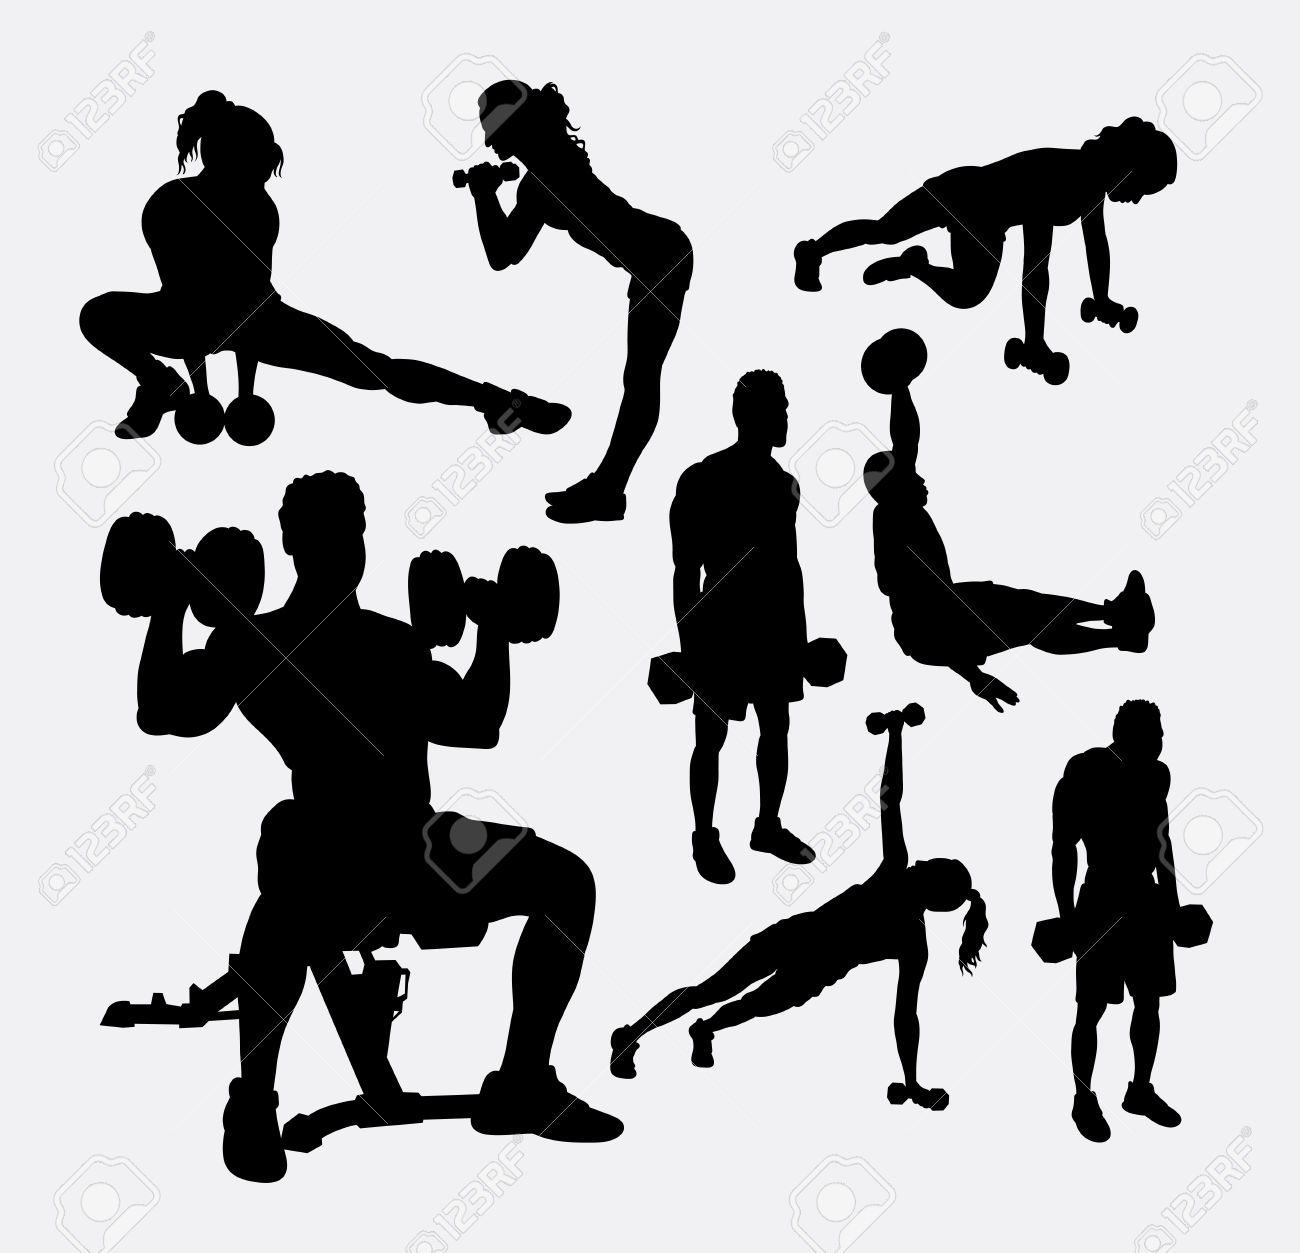 Training Exercise Sport Male And Female Silhouette. Good Use.